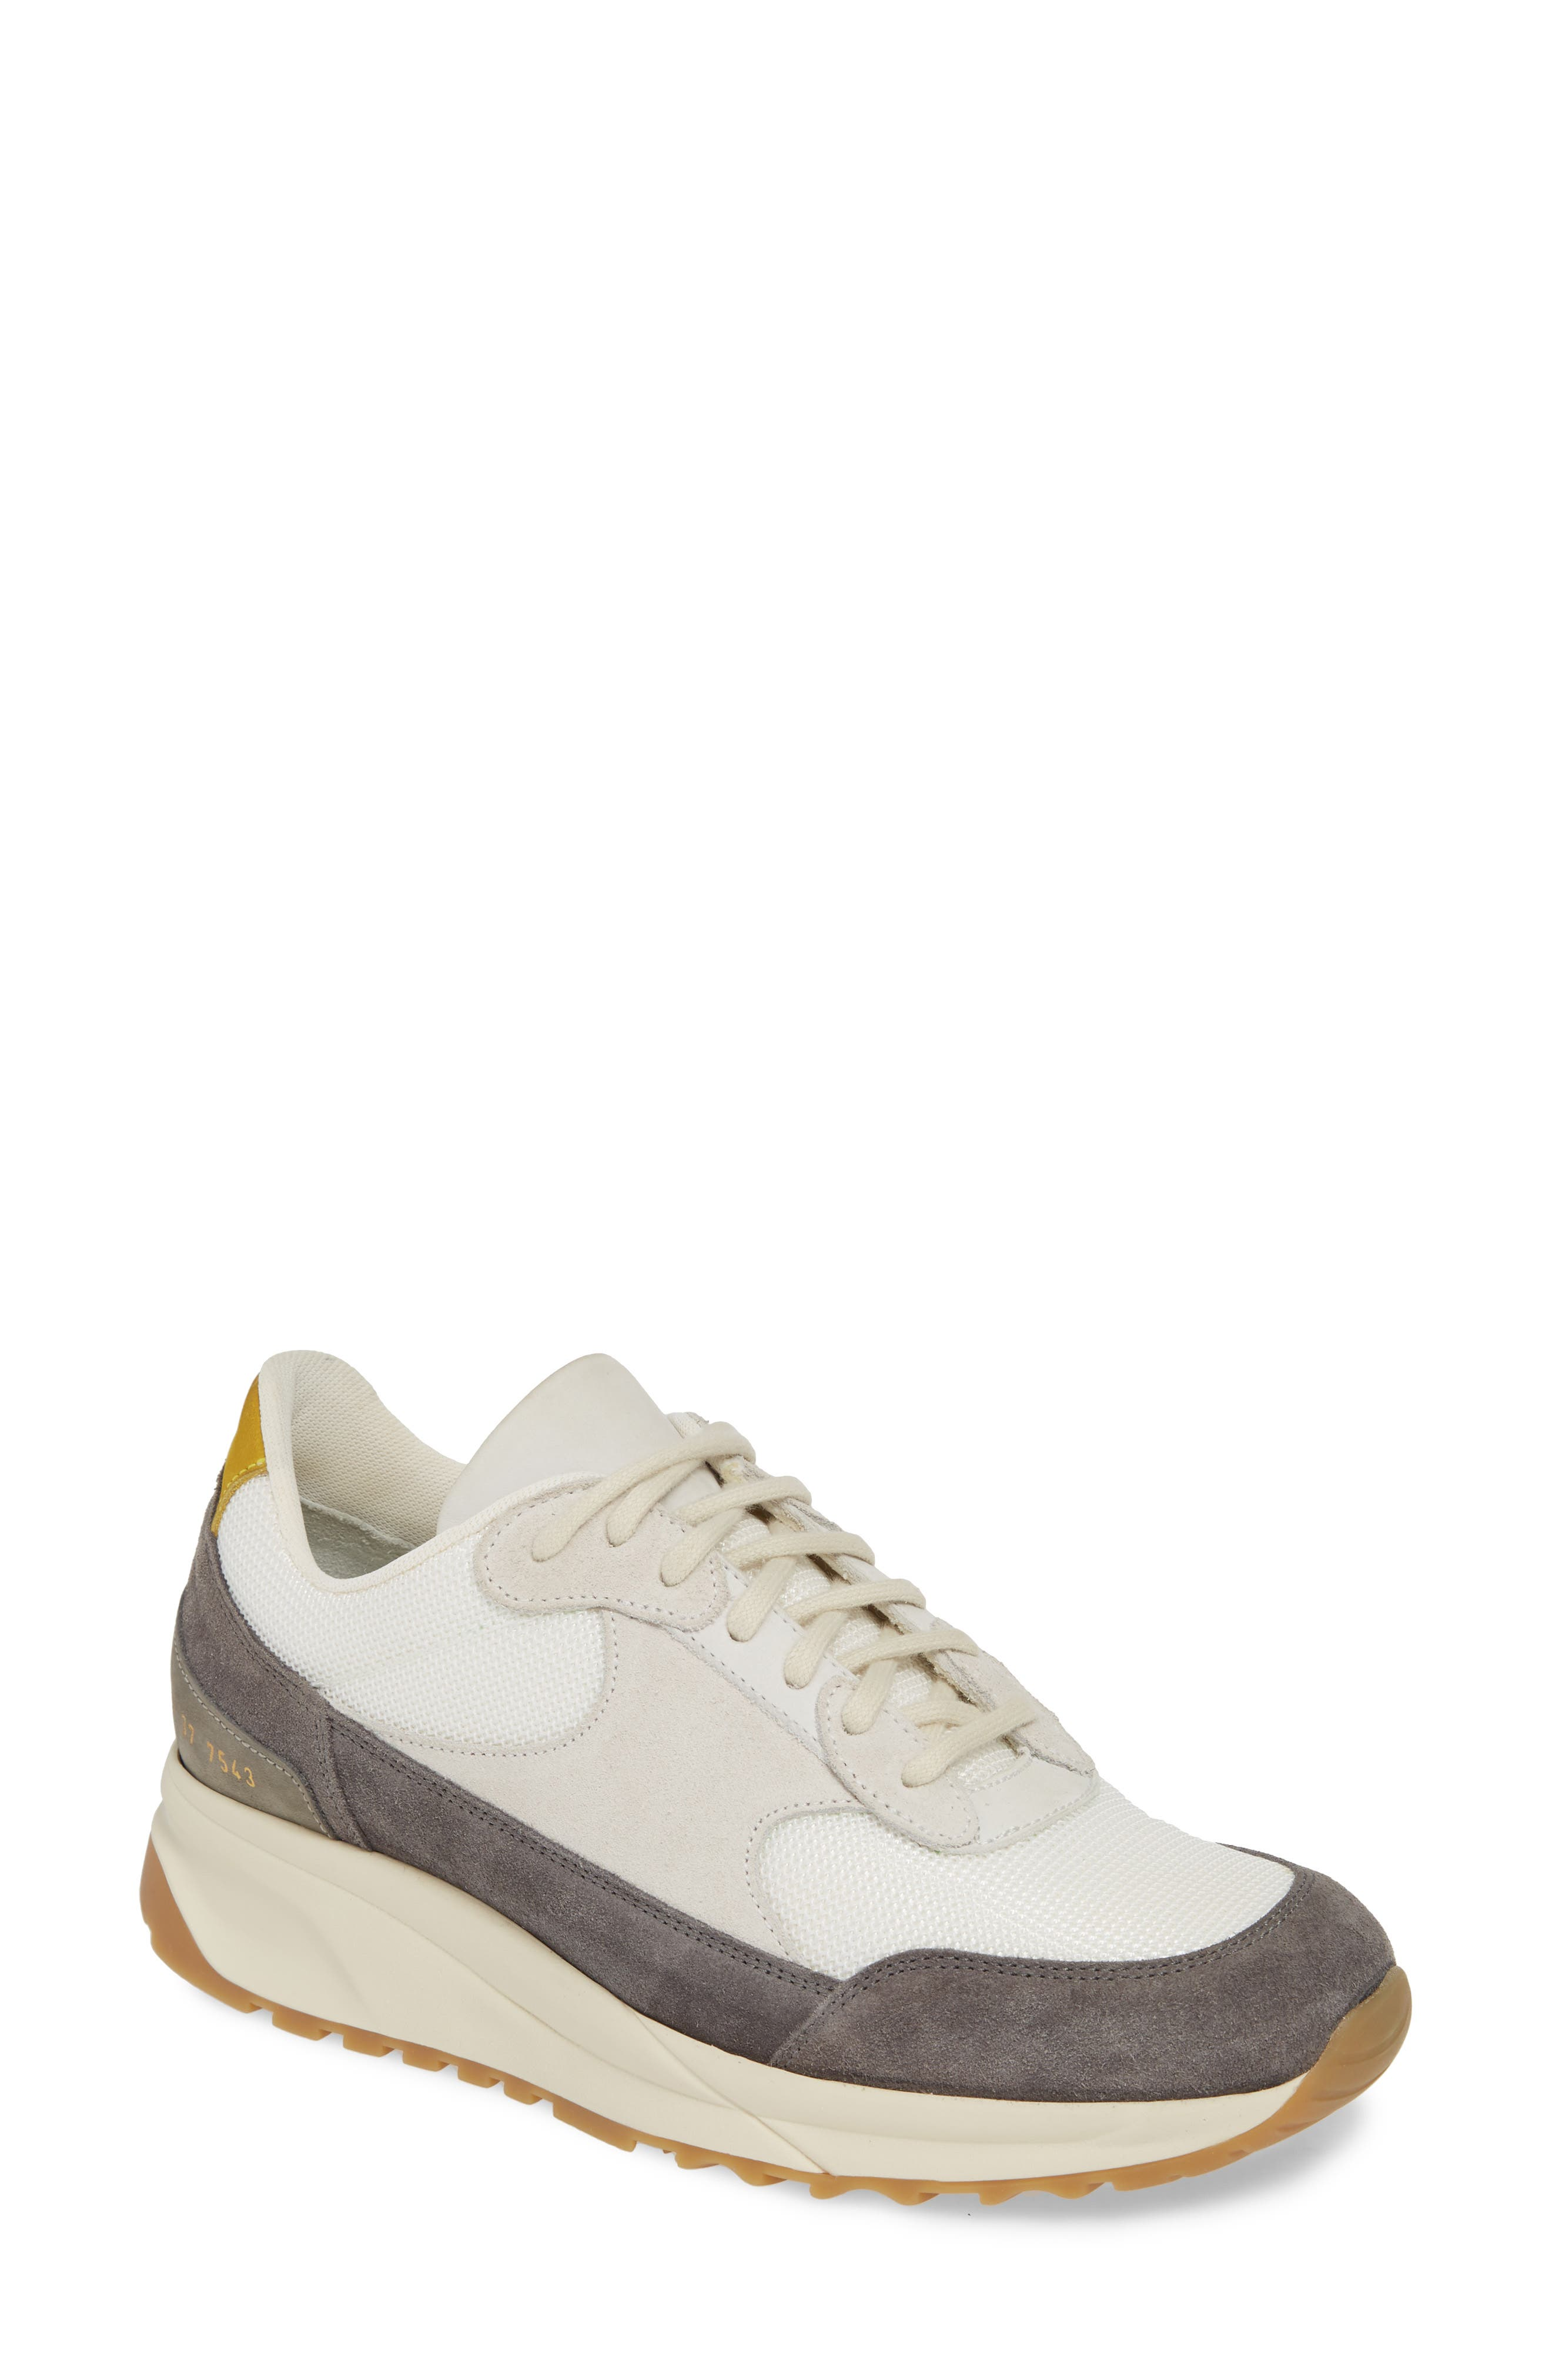 COMMON PROJECTS New Track Sneaker, Main, color, WHITE/ GREY